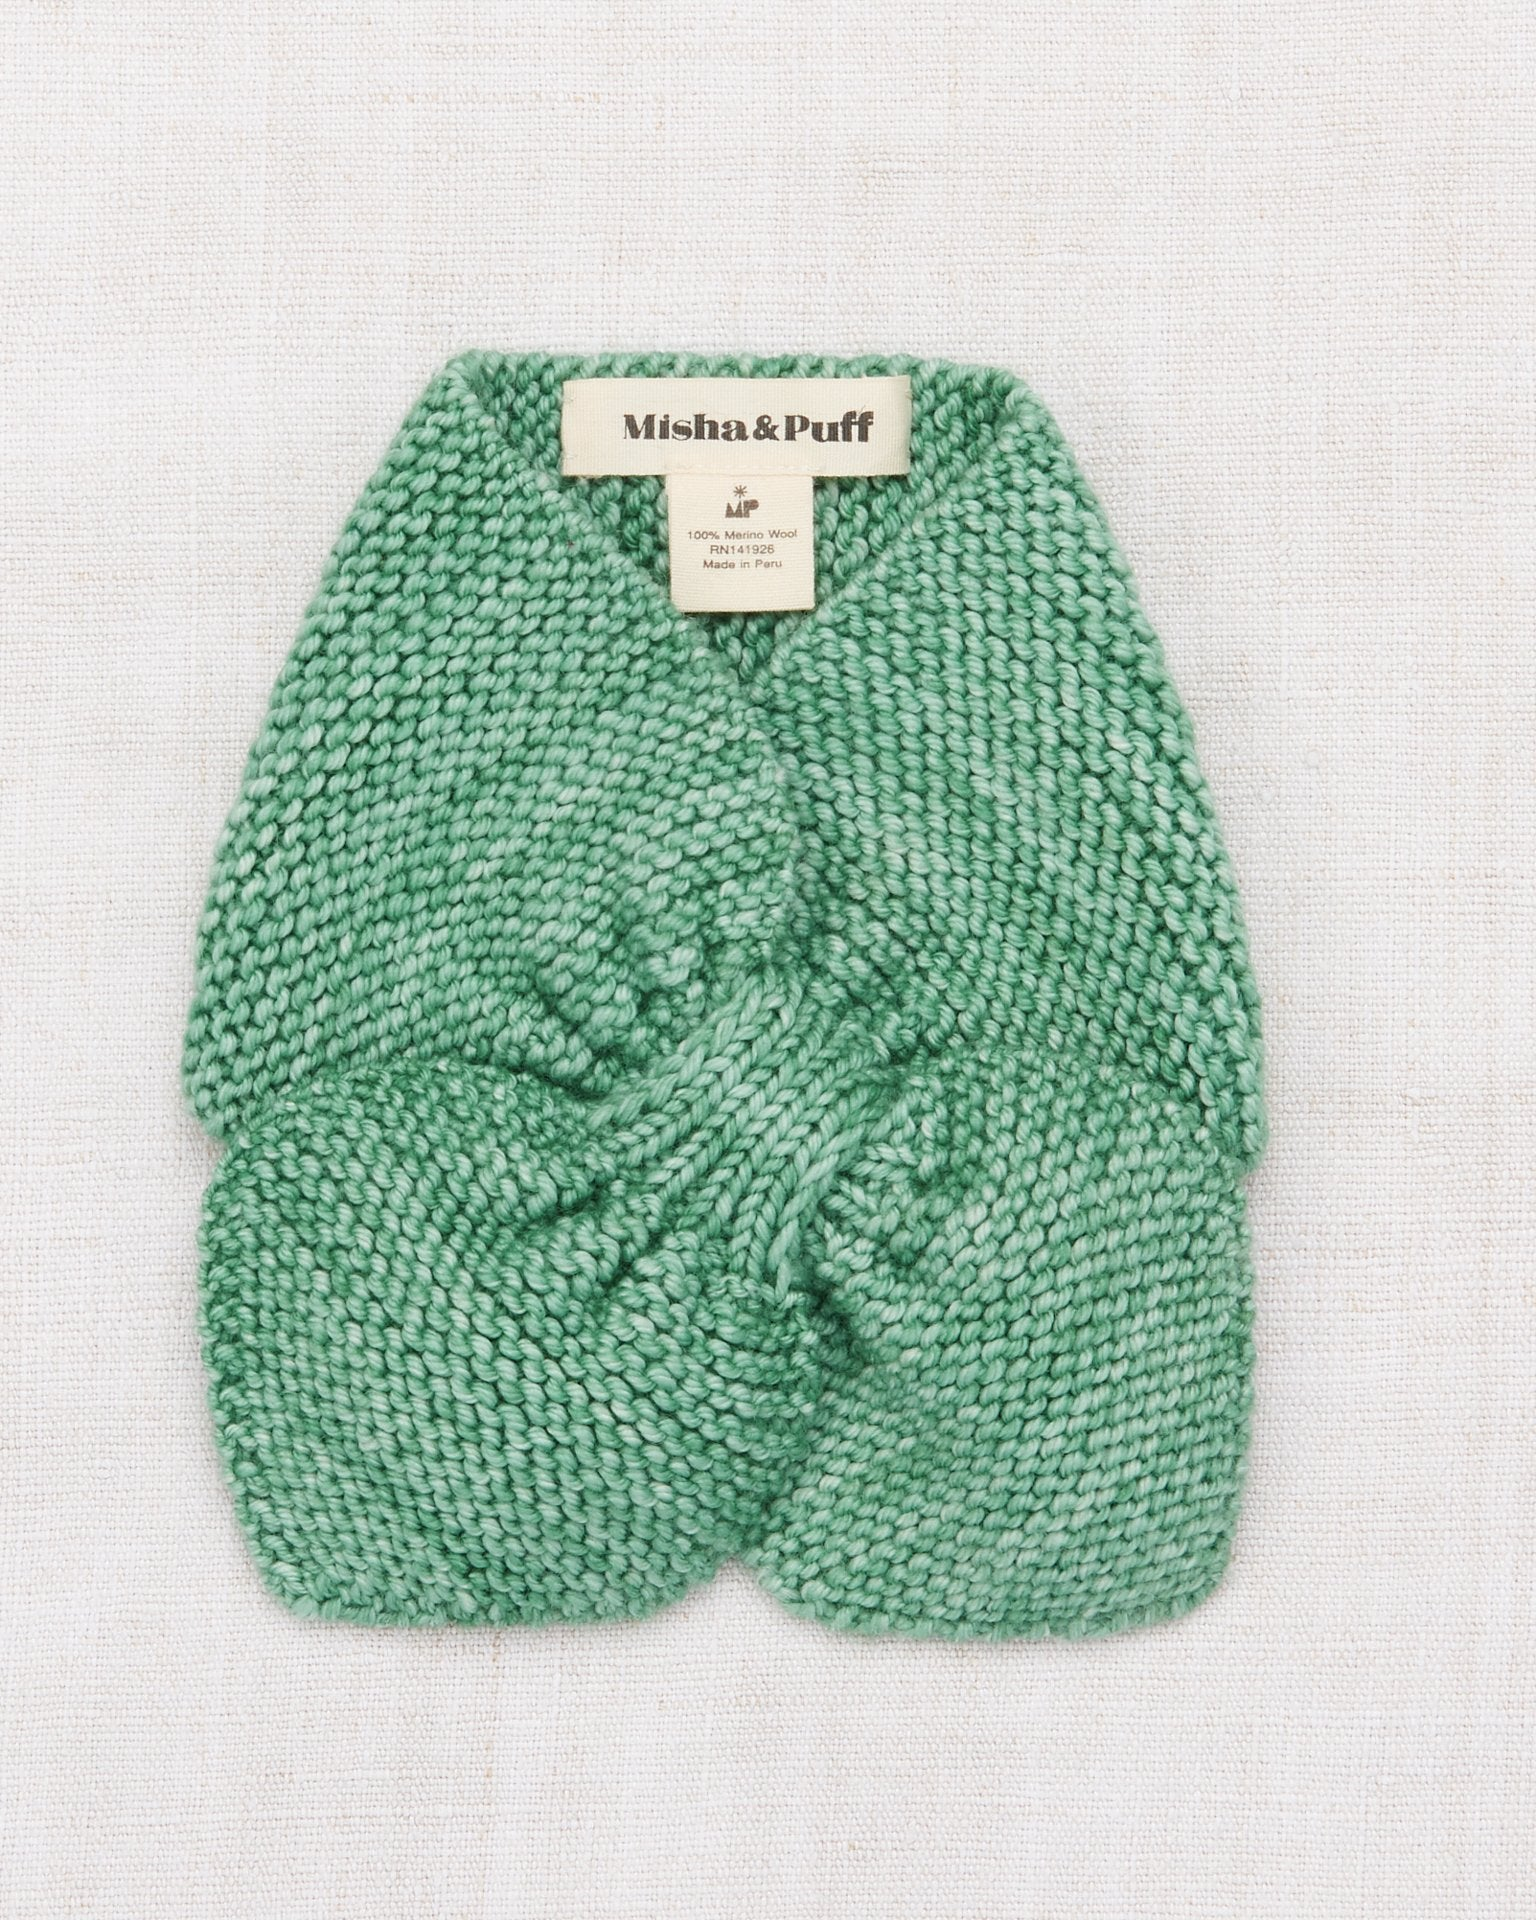 Little misha + puff accessories one size sledding scarf in celadon